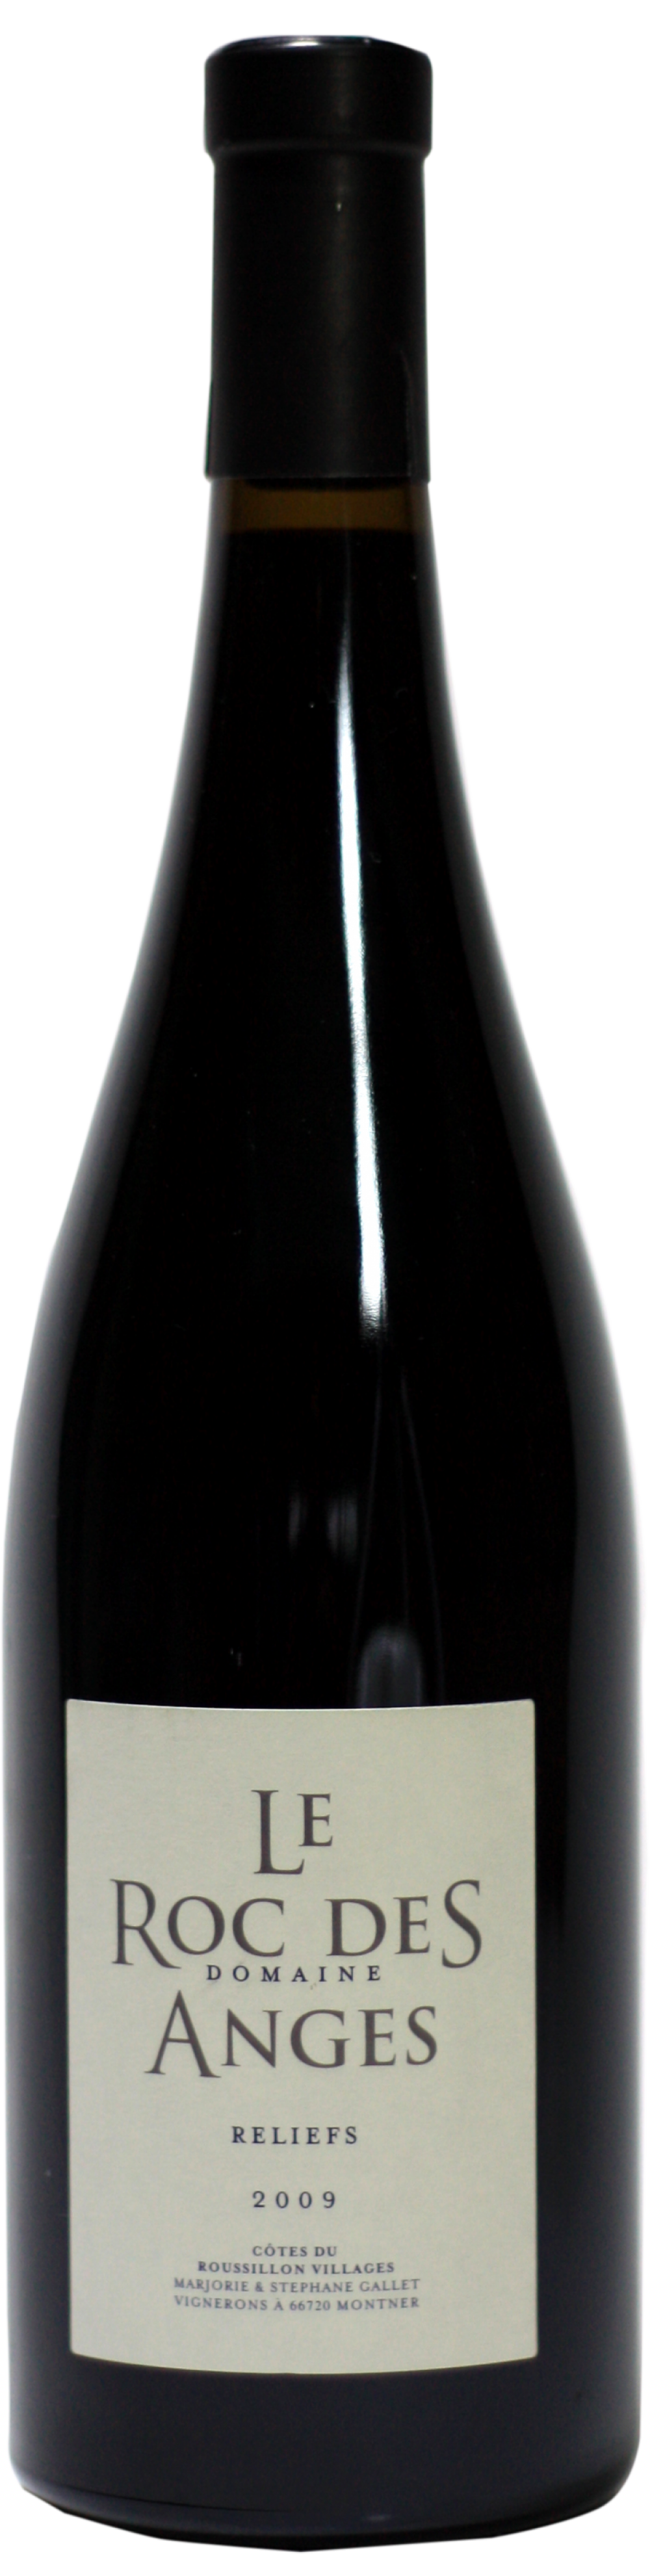 files/images/wines/France/domaine-roc-des-anges-roussillon/2013 rielief png.png